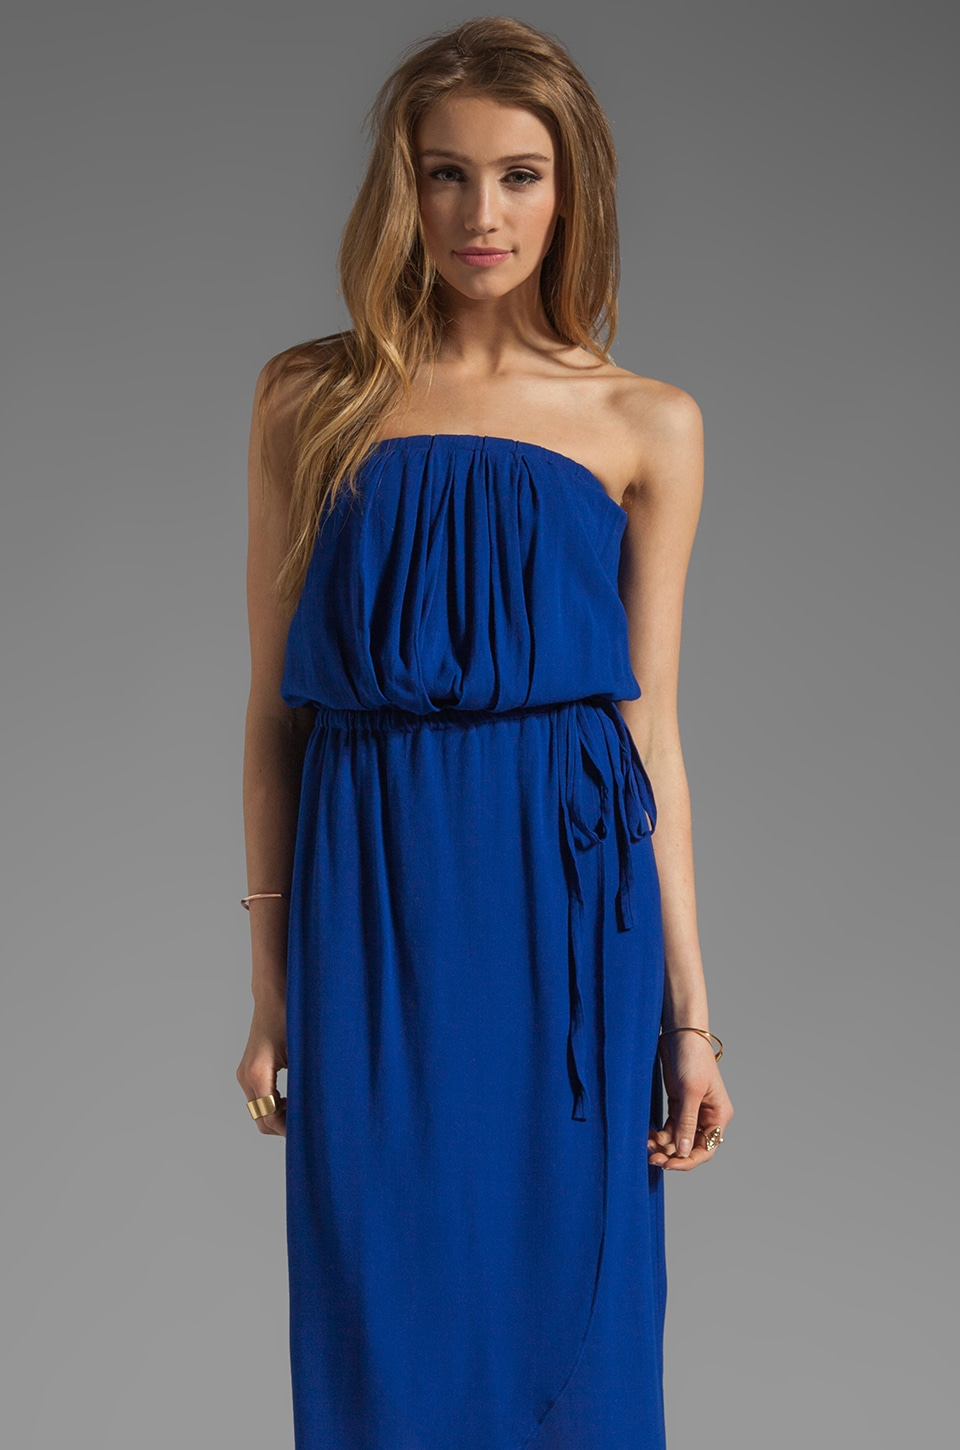 Ella Moss Stella Strapless Maxi in Royal